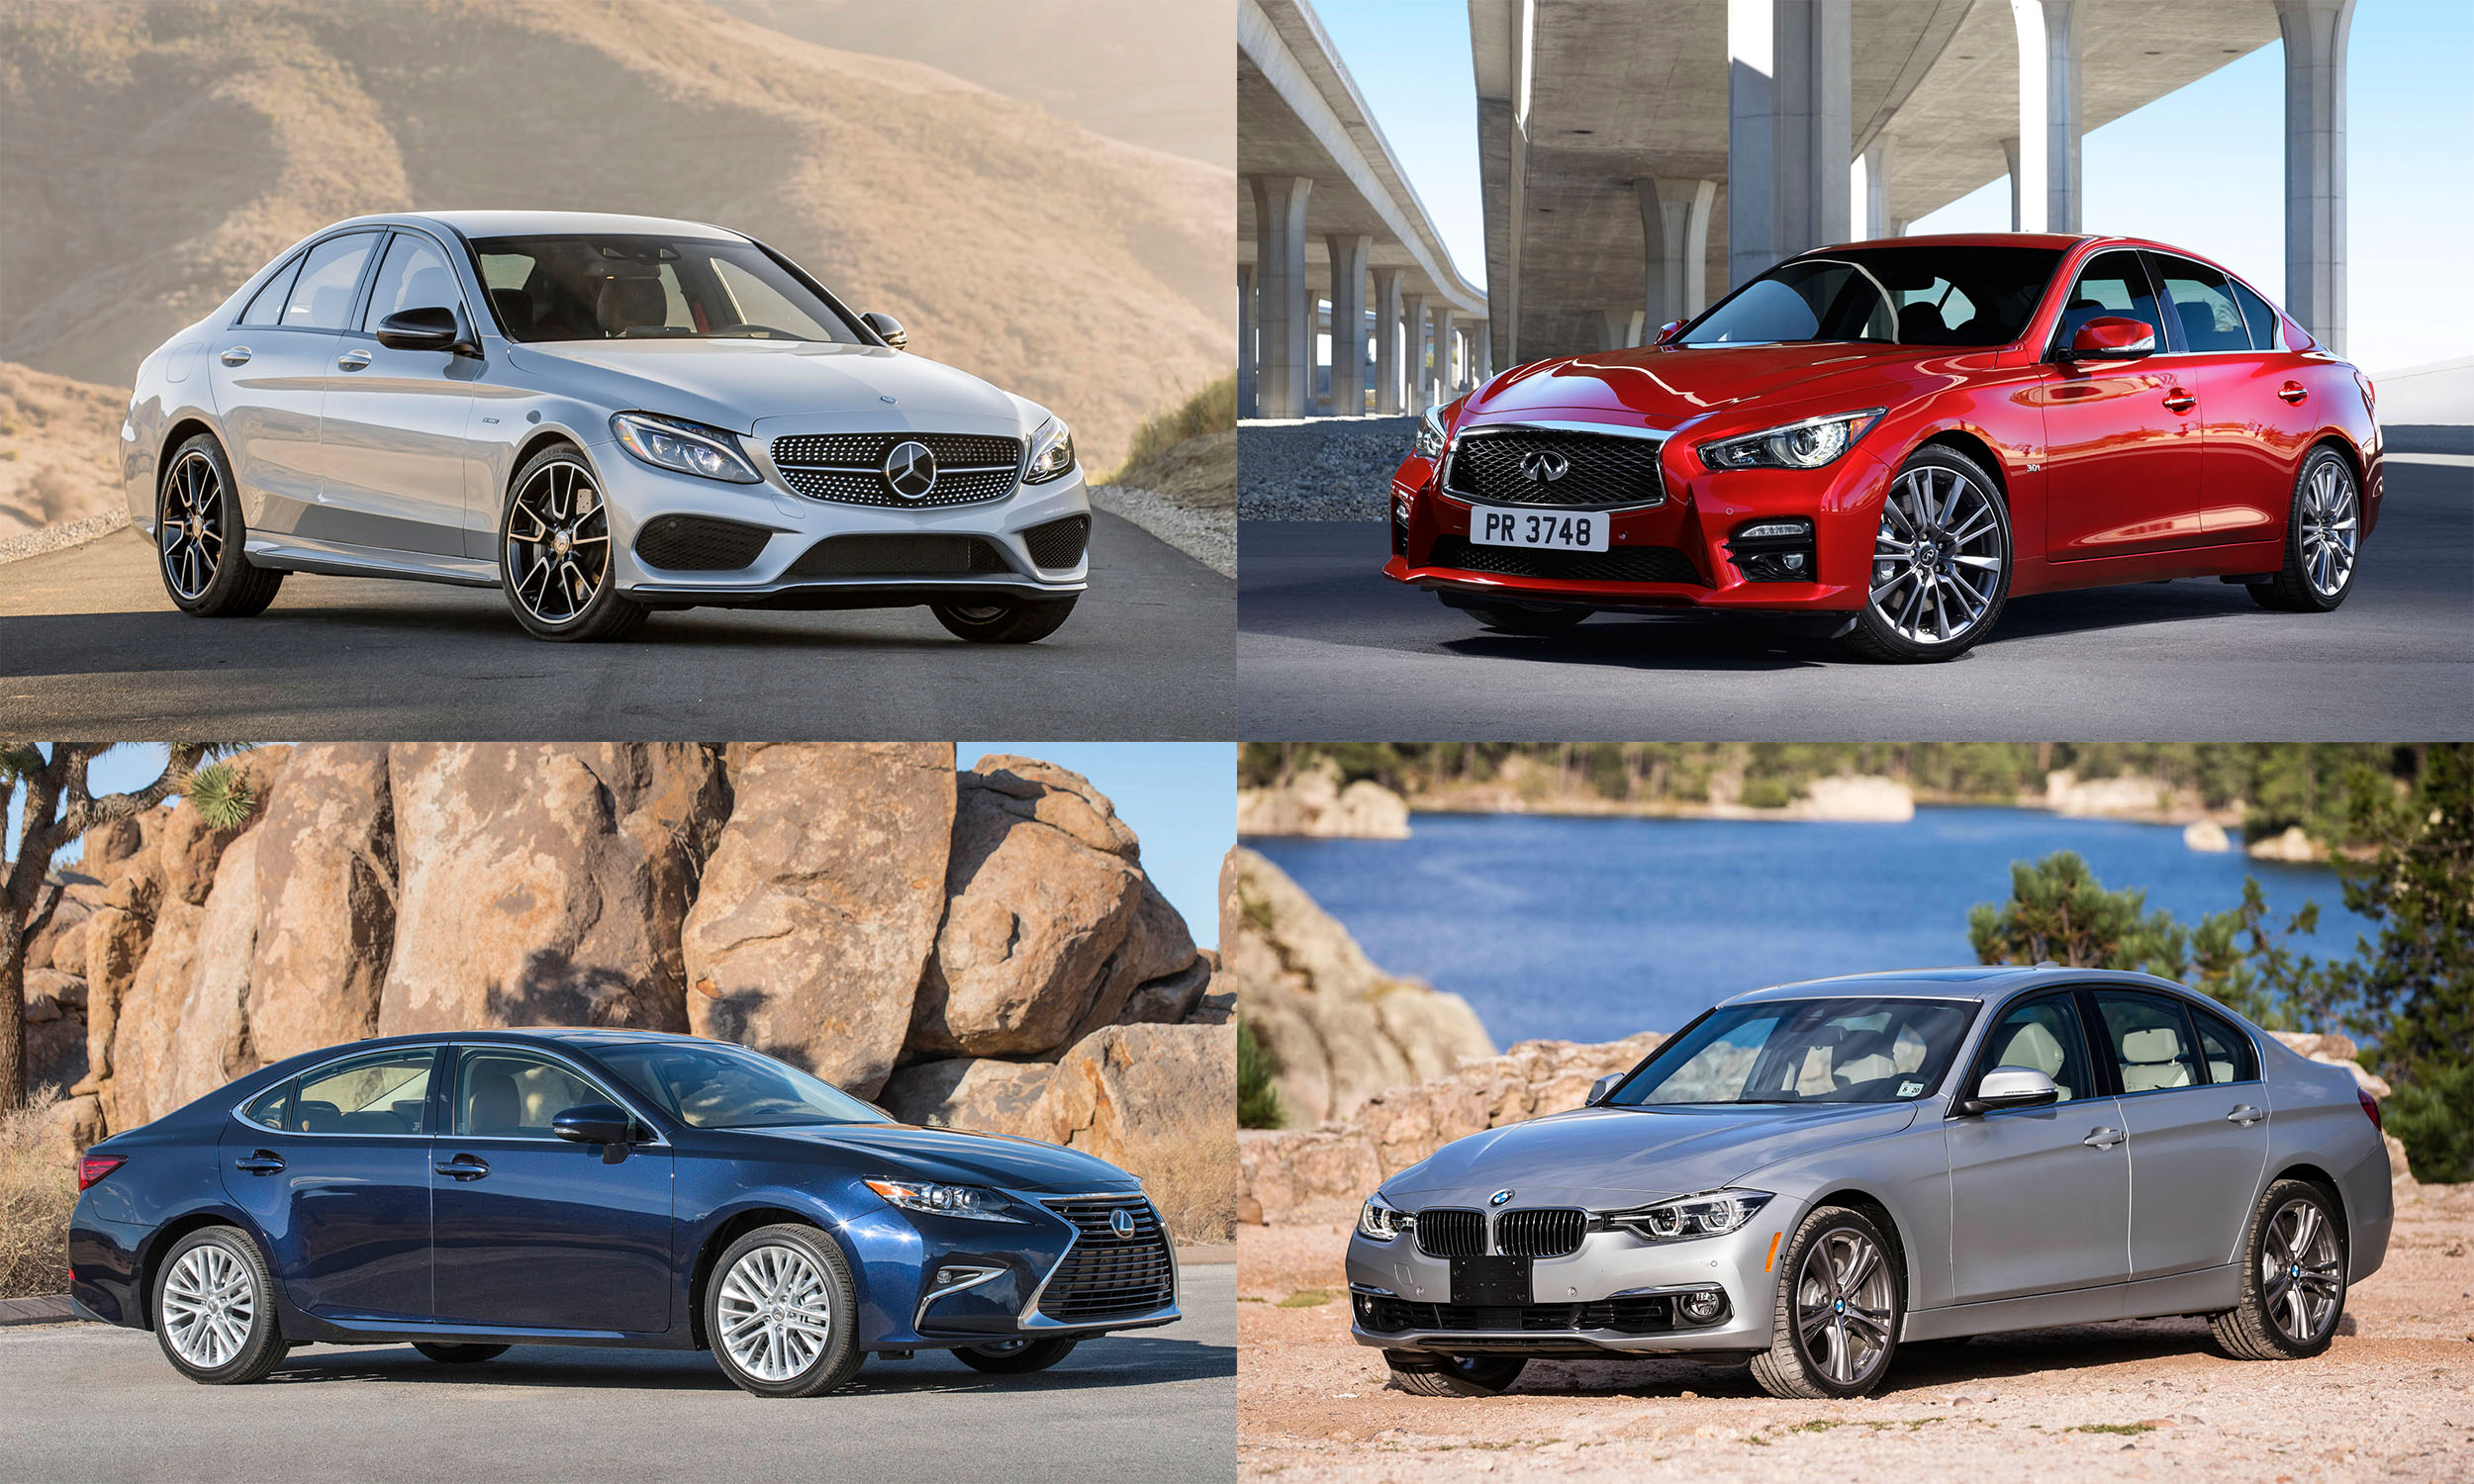 © Mercedes-Benz USA, Infiniti North America, Inc., BMW of North America, Toyota Motor Sales